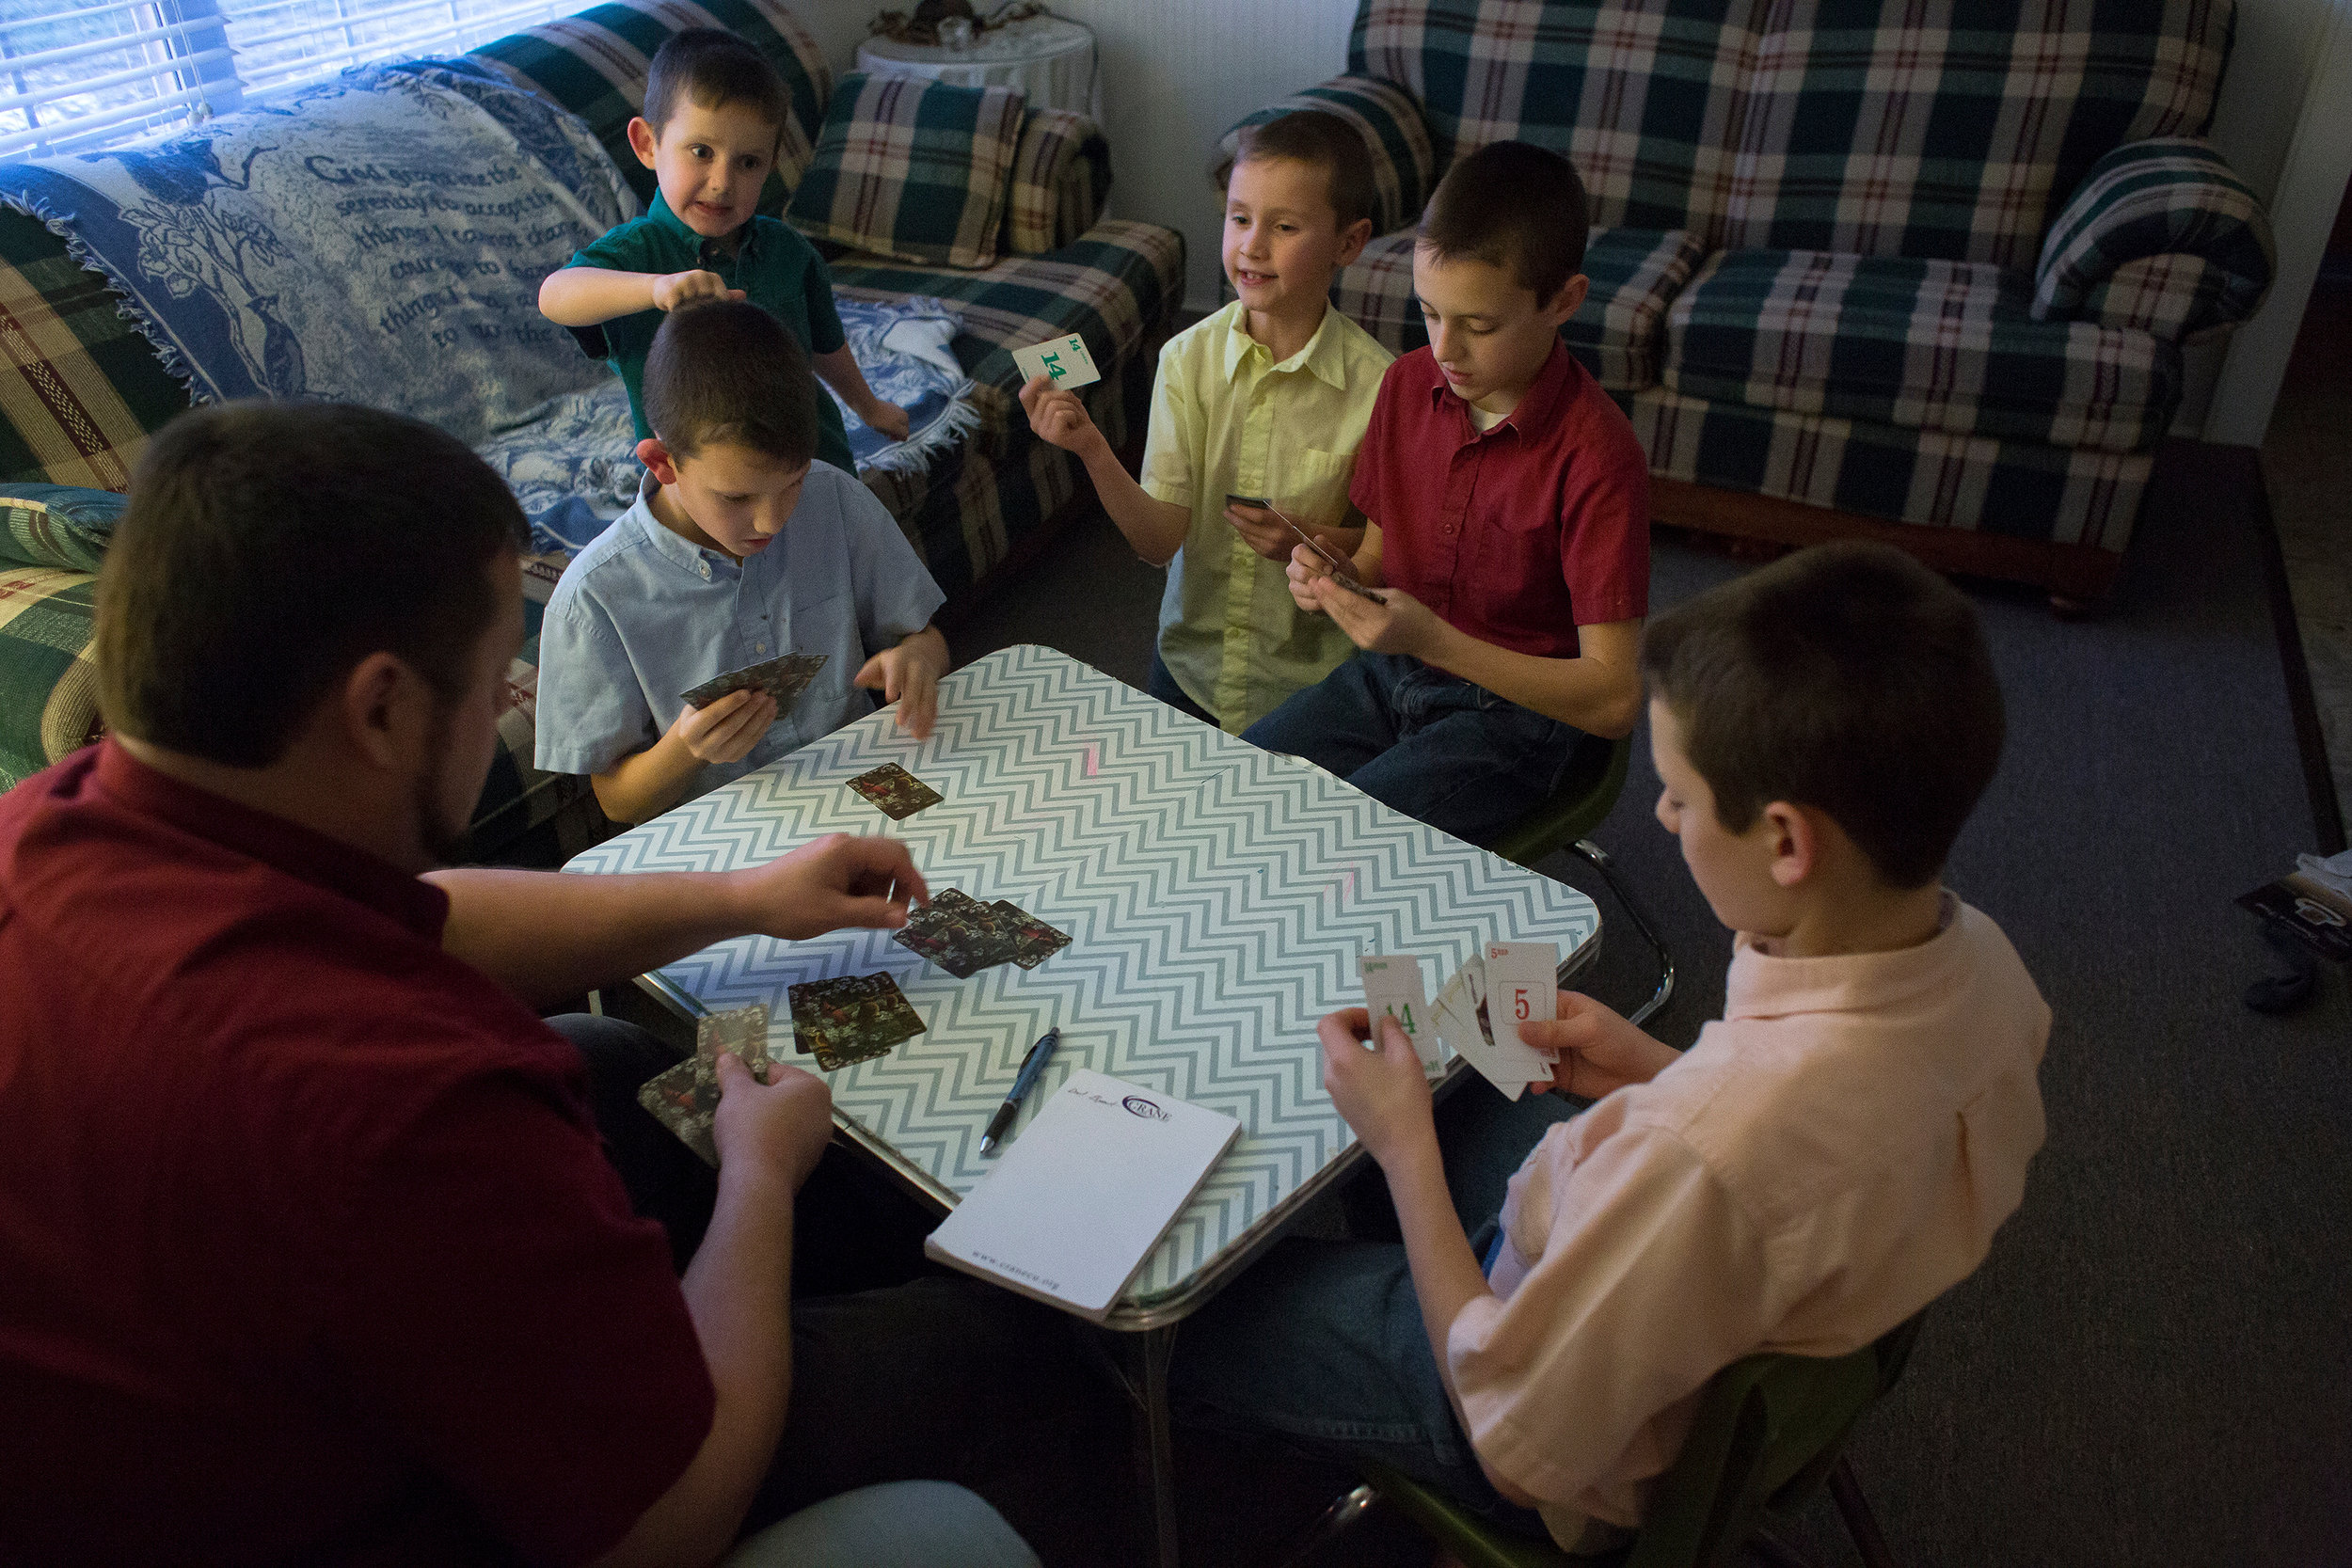 Stanley played Rook with his sons — Bryant, Cody, Darius, Tyler and Zachary — to pass time before dinner Dec. 30. Because they don't have a television, reading books and playing games like Rook are common occurrences in the Knepp household. During the warmer months of the year, the children spend more time with outdoor activities.